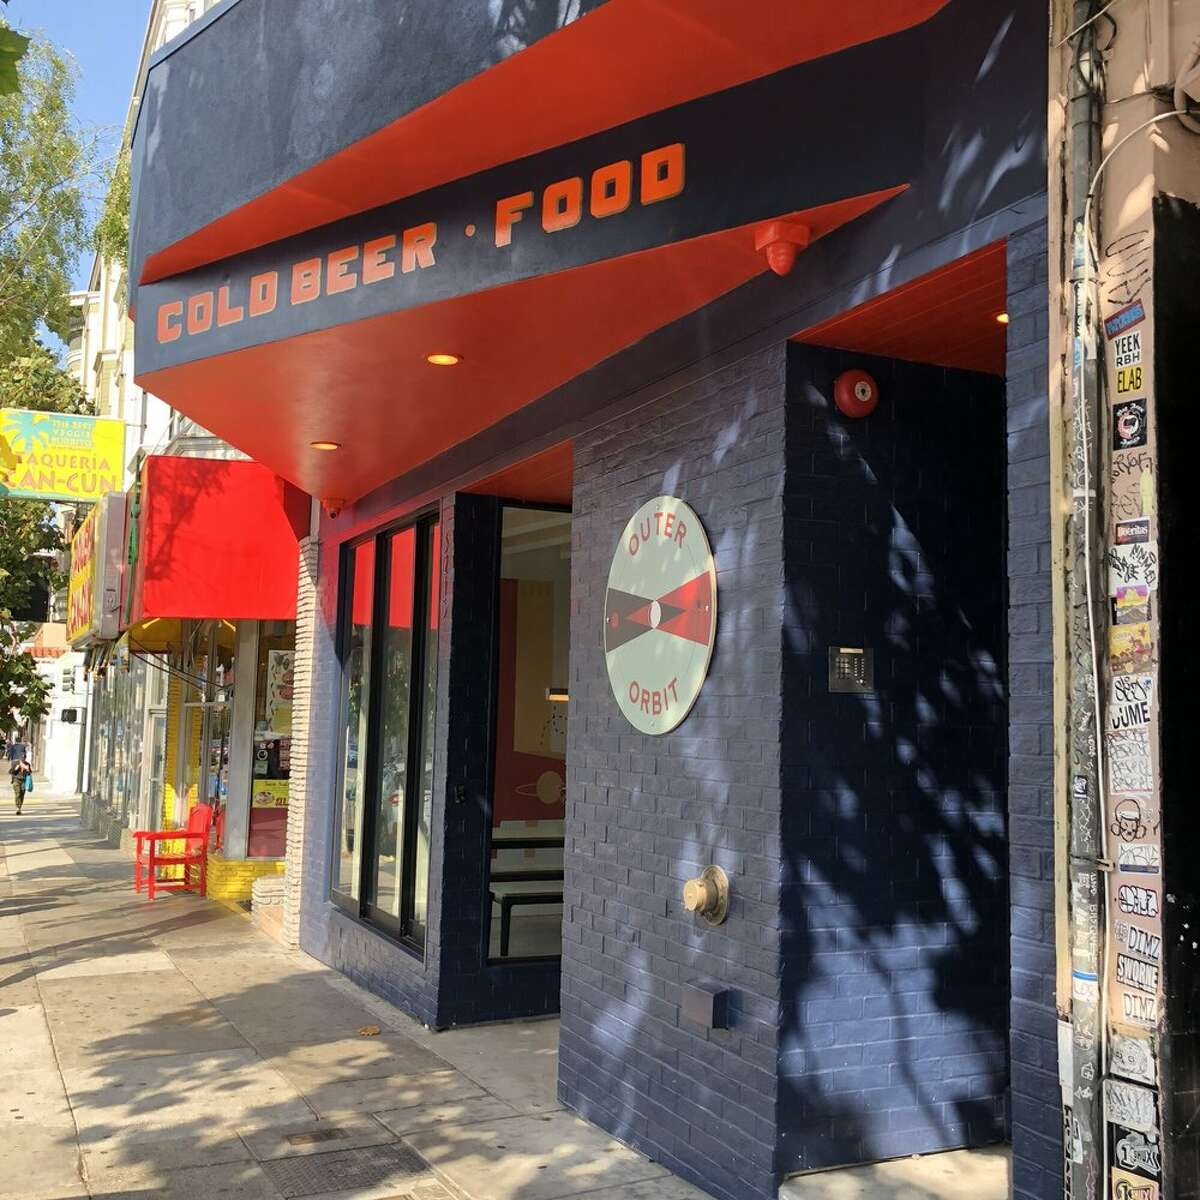 Outer Orbit Cuisine: Hawaiian, bar Find them: 3215 Mission St.  Inspection date: Aug. 20, 2018